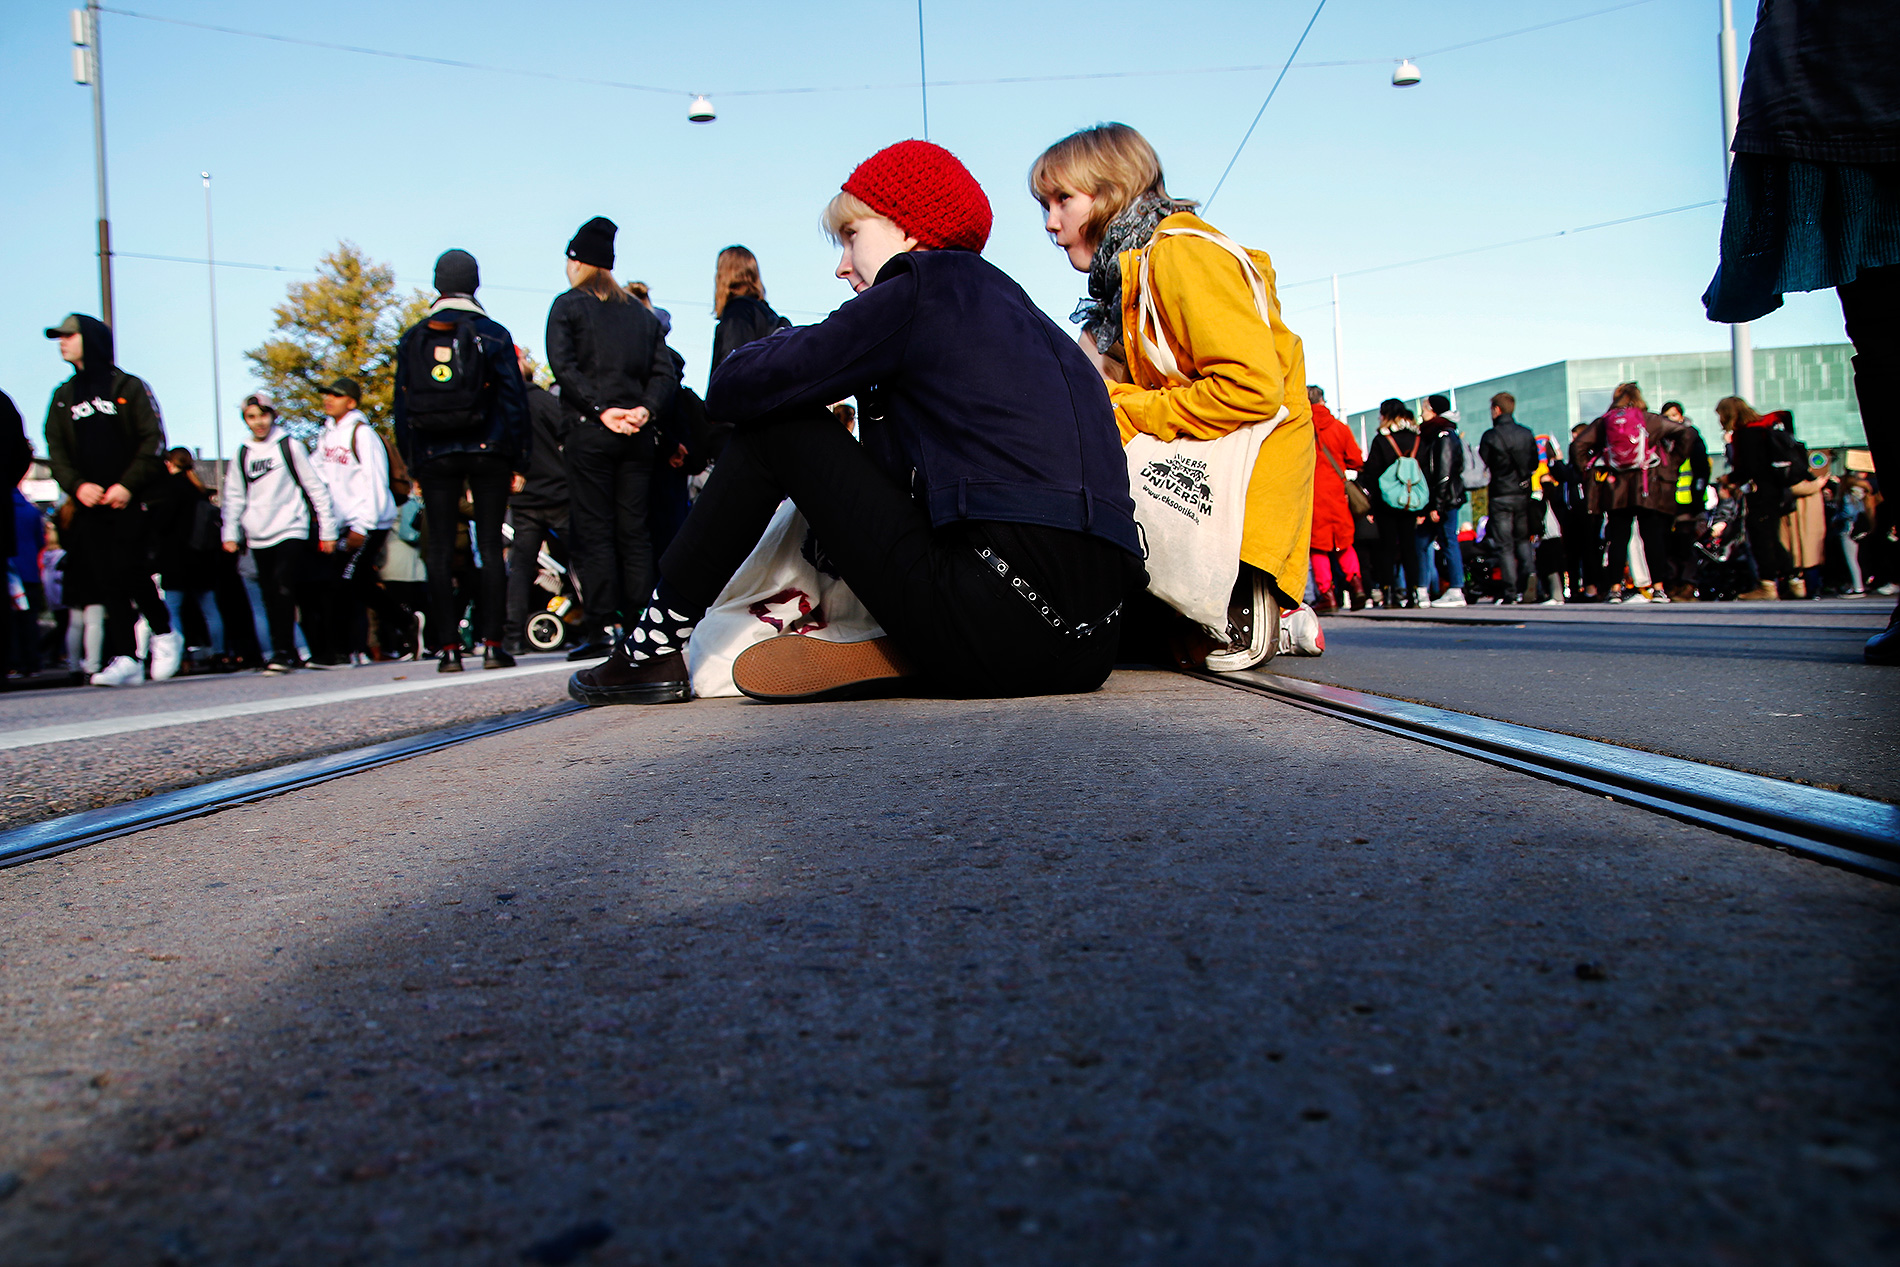 Protesters sitting on Mannerheimintie. Picture: Tony Öhberg for Finland Today